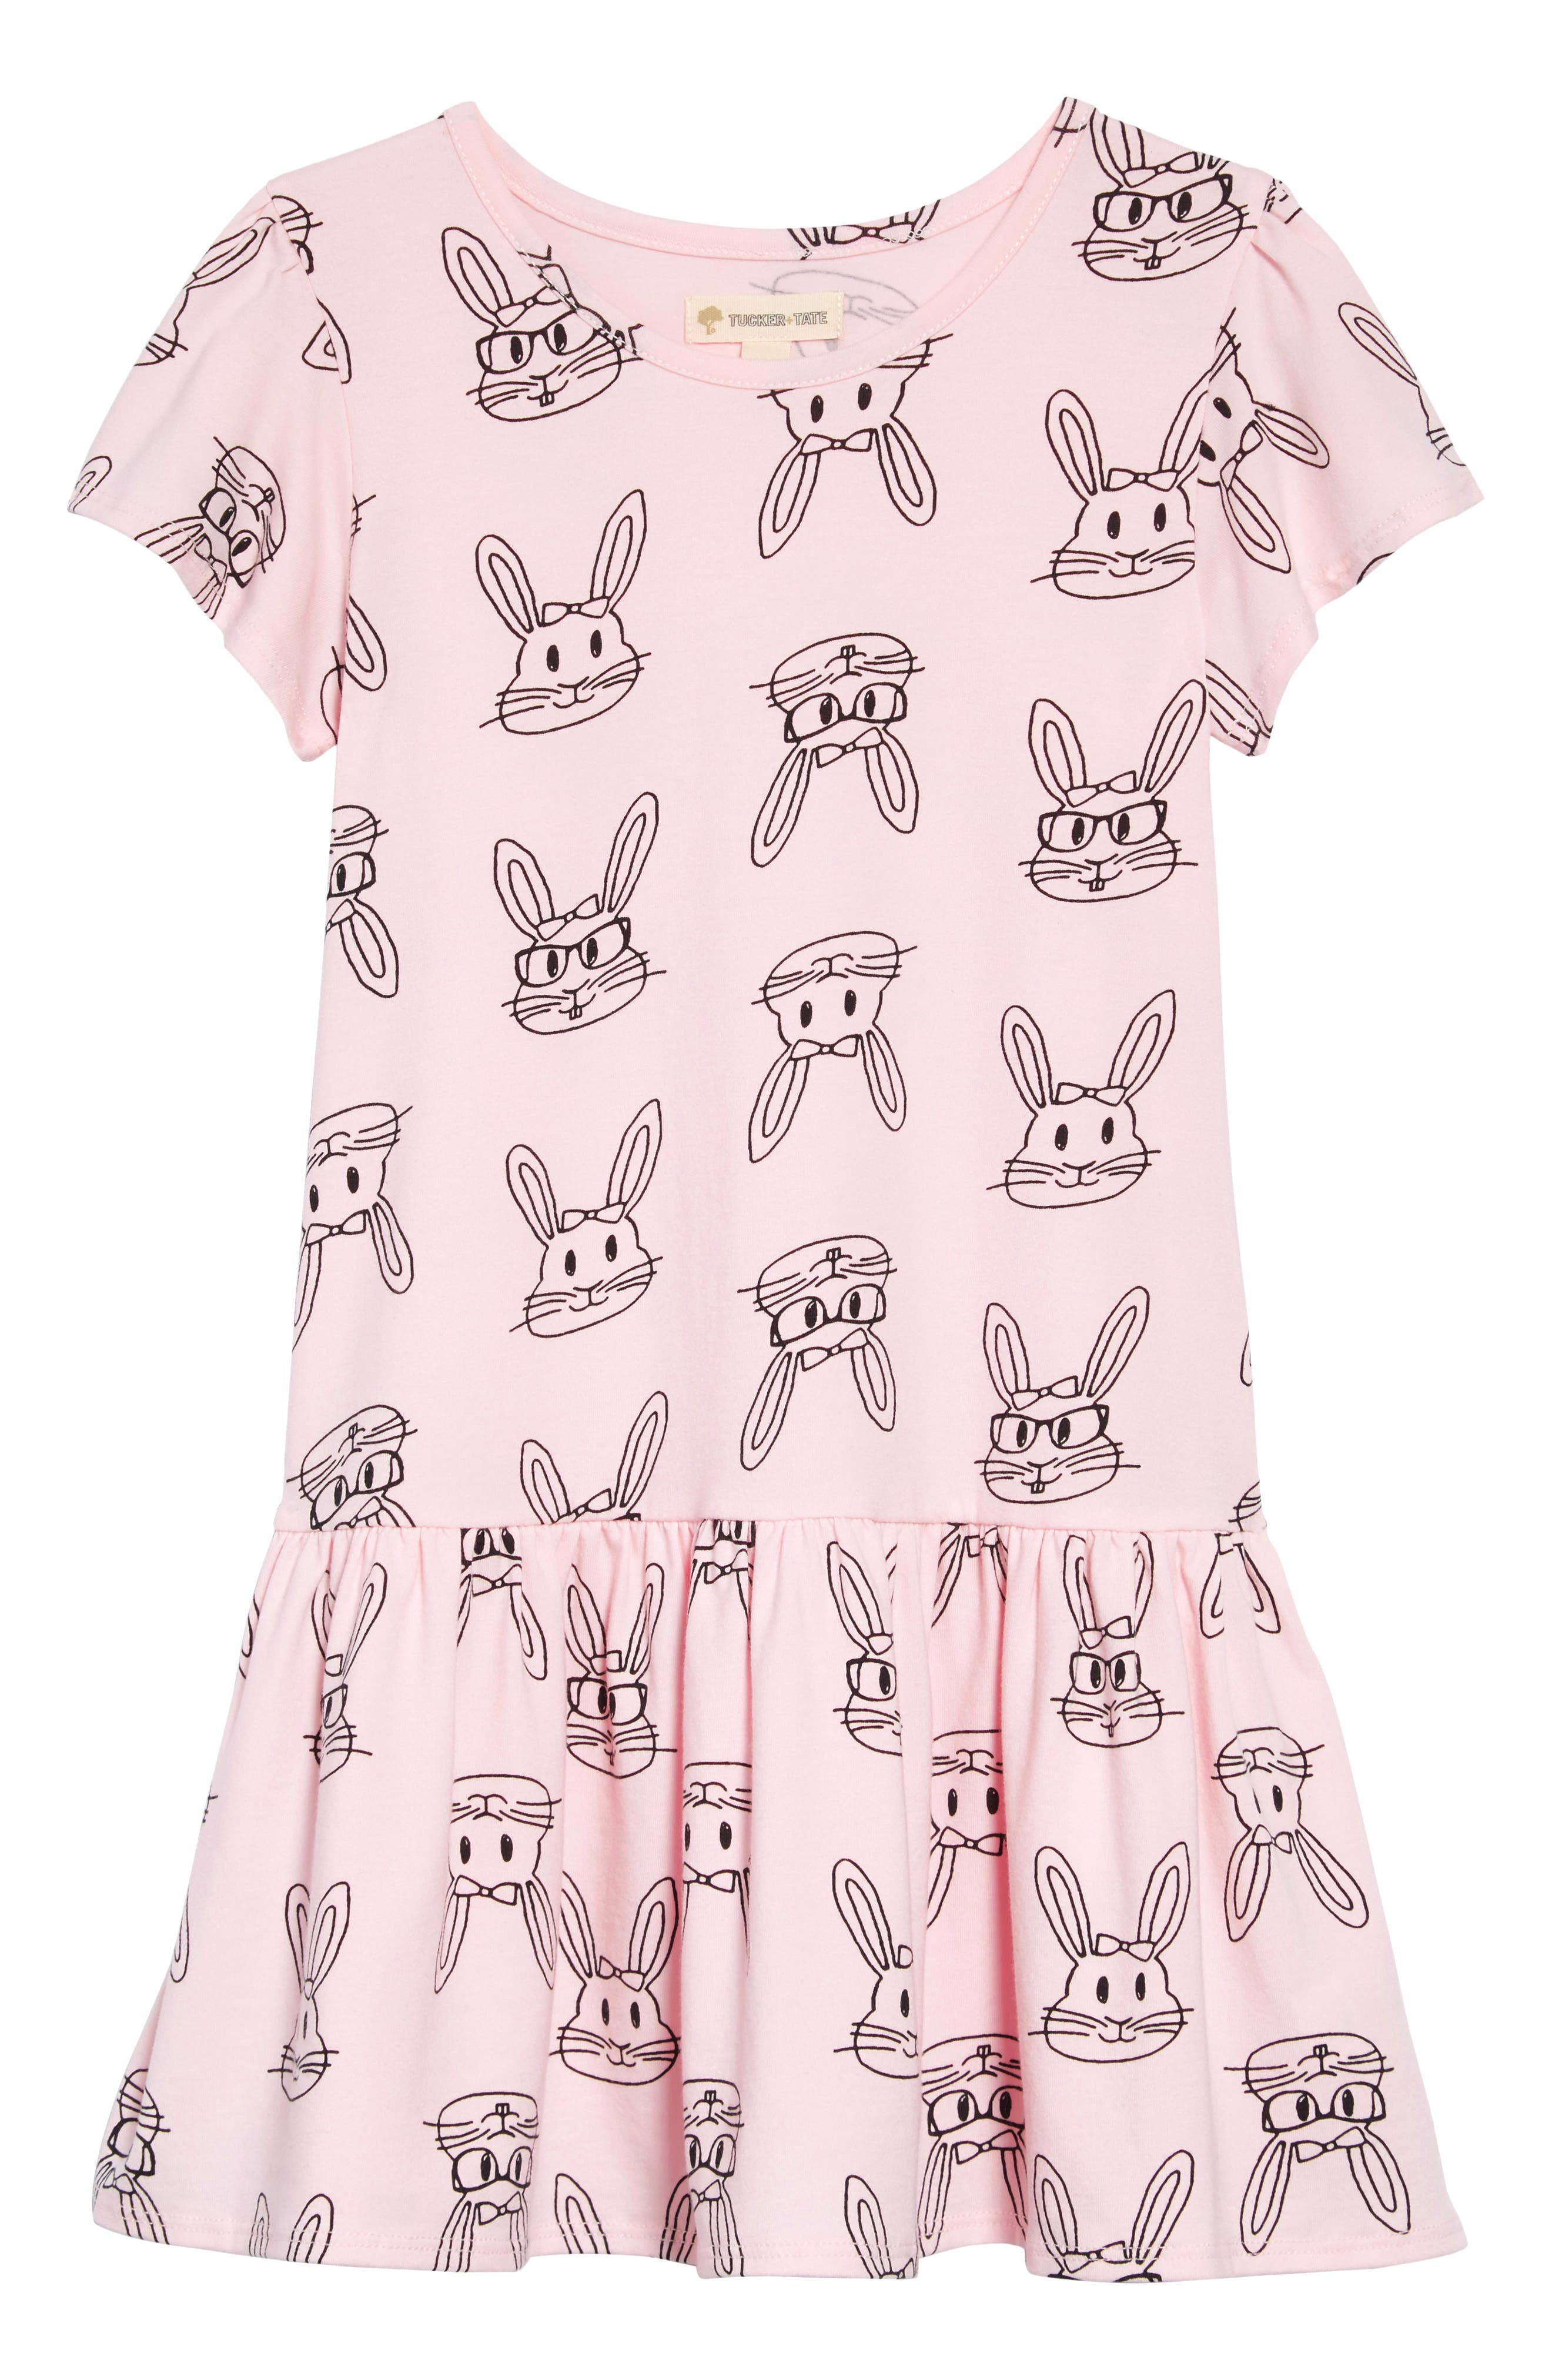 TUCKER + TATE Tucker & Tate Print Jersey Dress, Main, color, PINK AMOUR BUNNY DOODLE